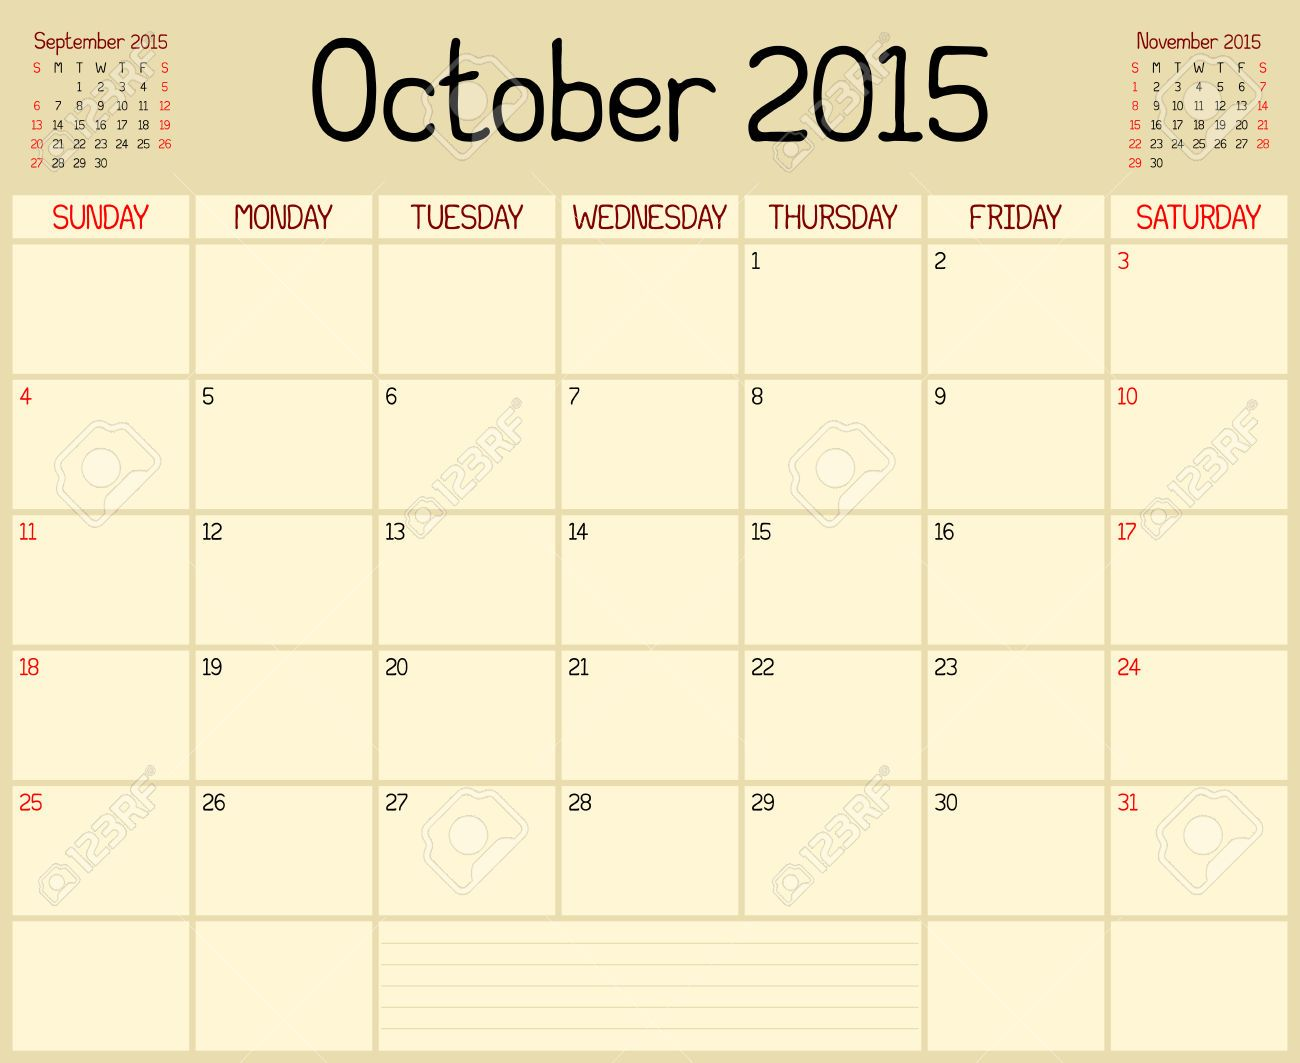 october 2015 calendar to print in this post were sharing latest calendar templates scroll down the page and download free october 2015 calendar template